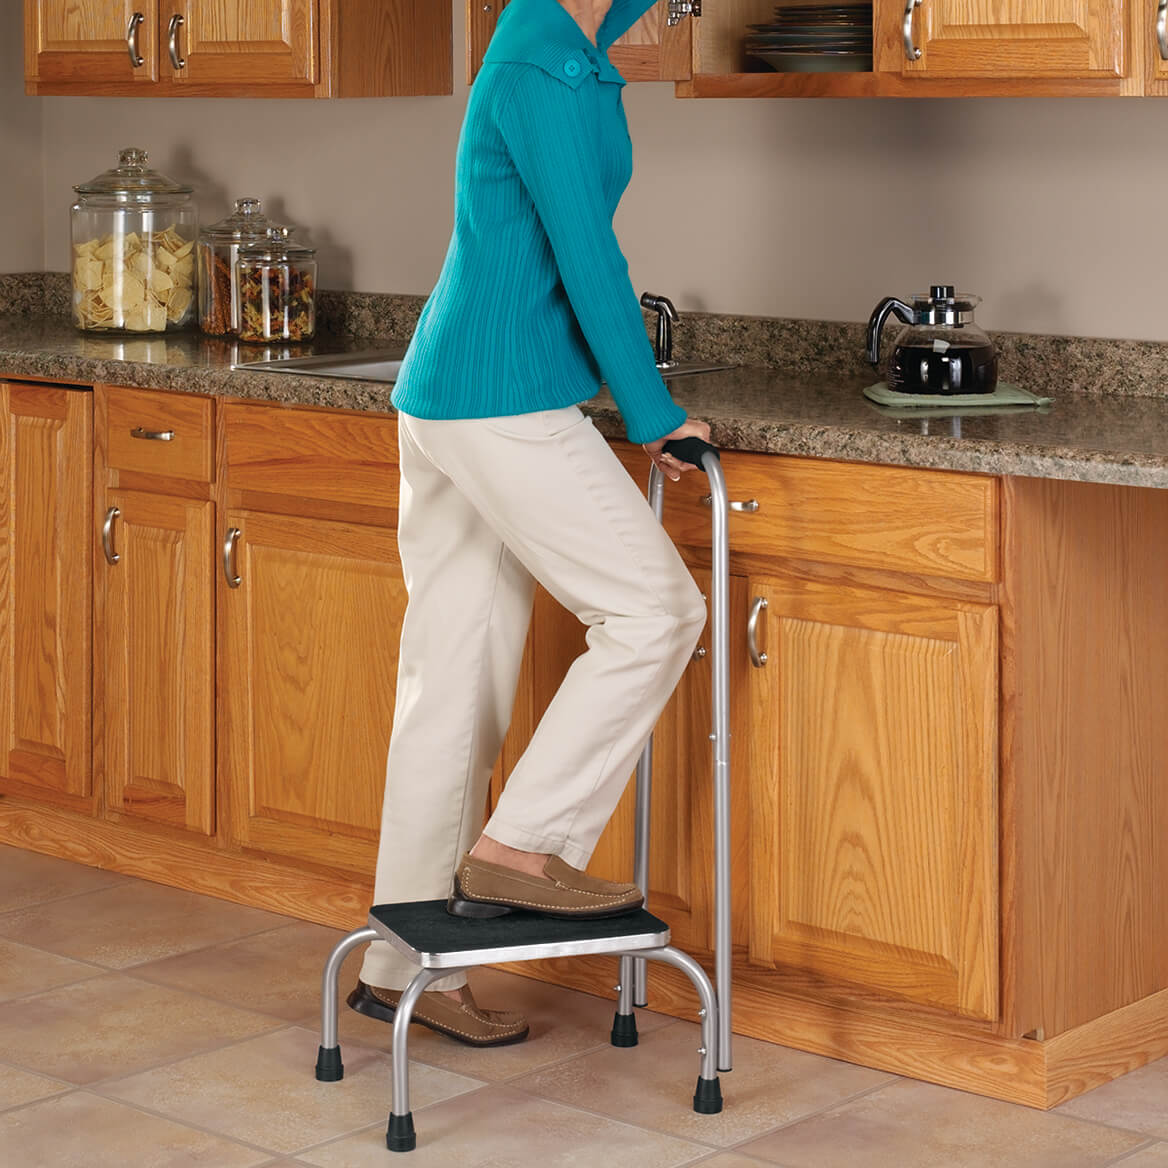 Step Stool With Handle Step Stool With Handrail Walter